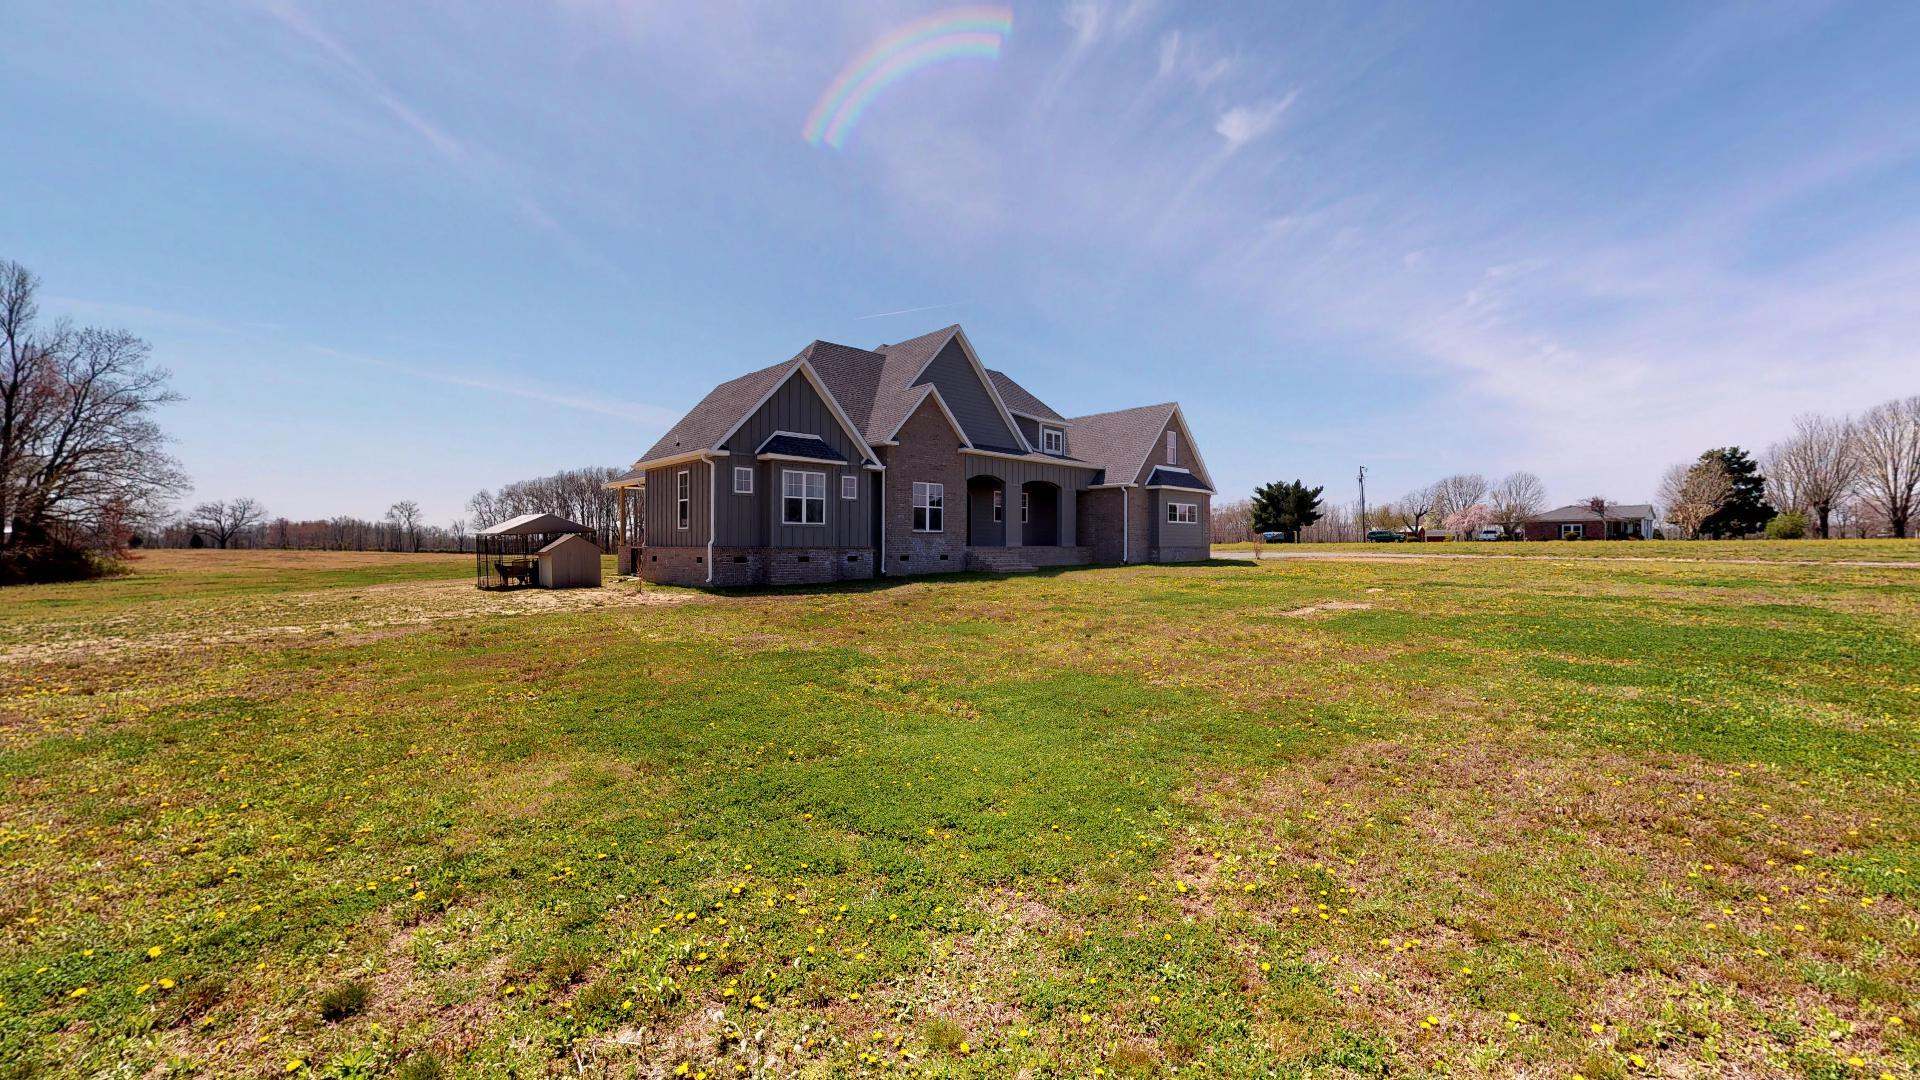 660 Iconium Rd, Woodbury, TN 37190 - Woodbury, TN real estate listing